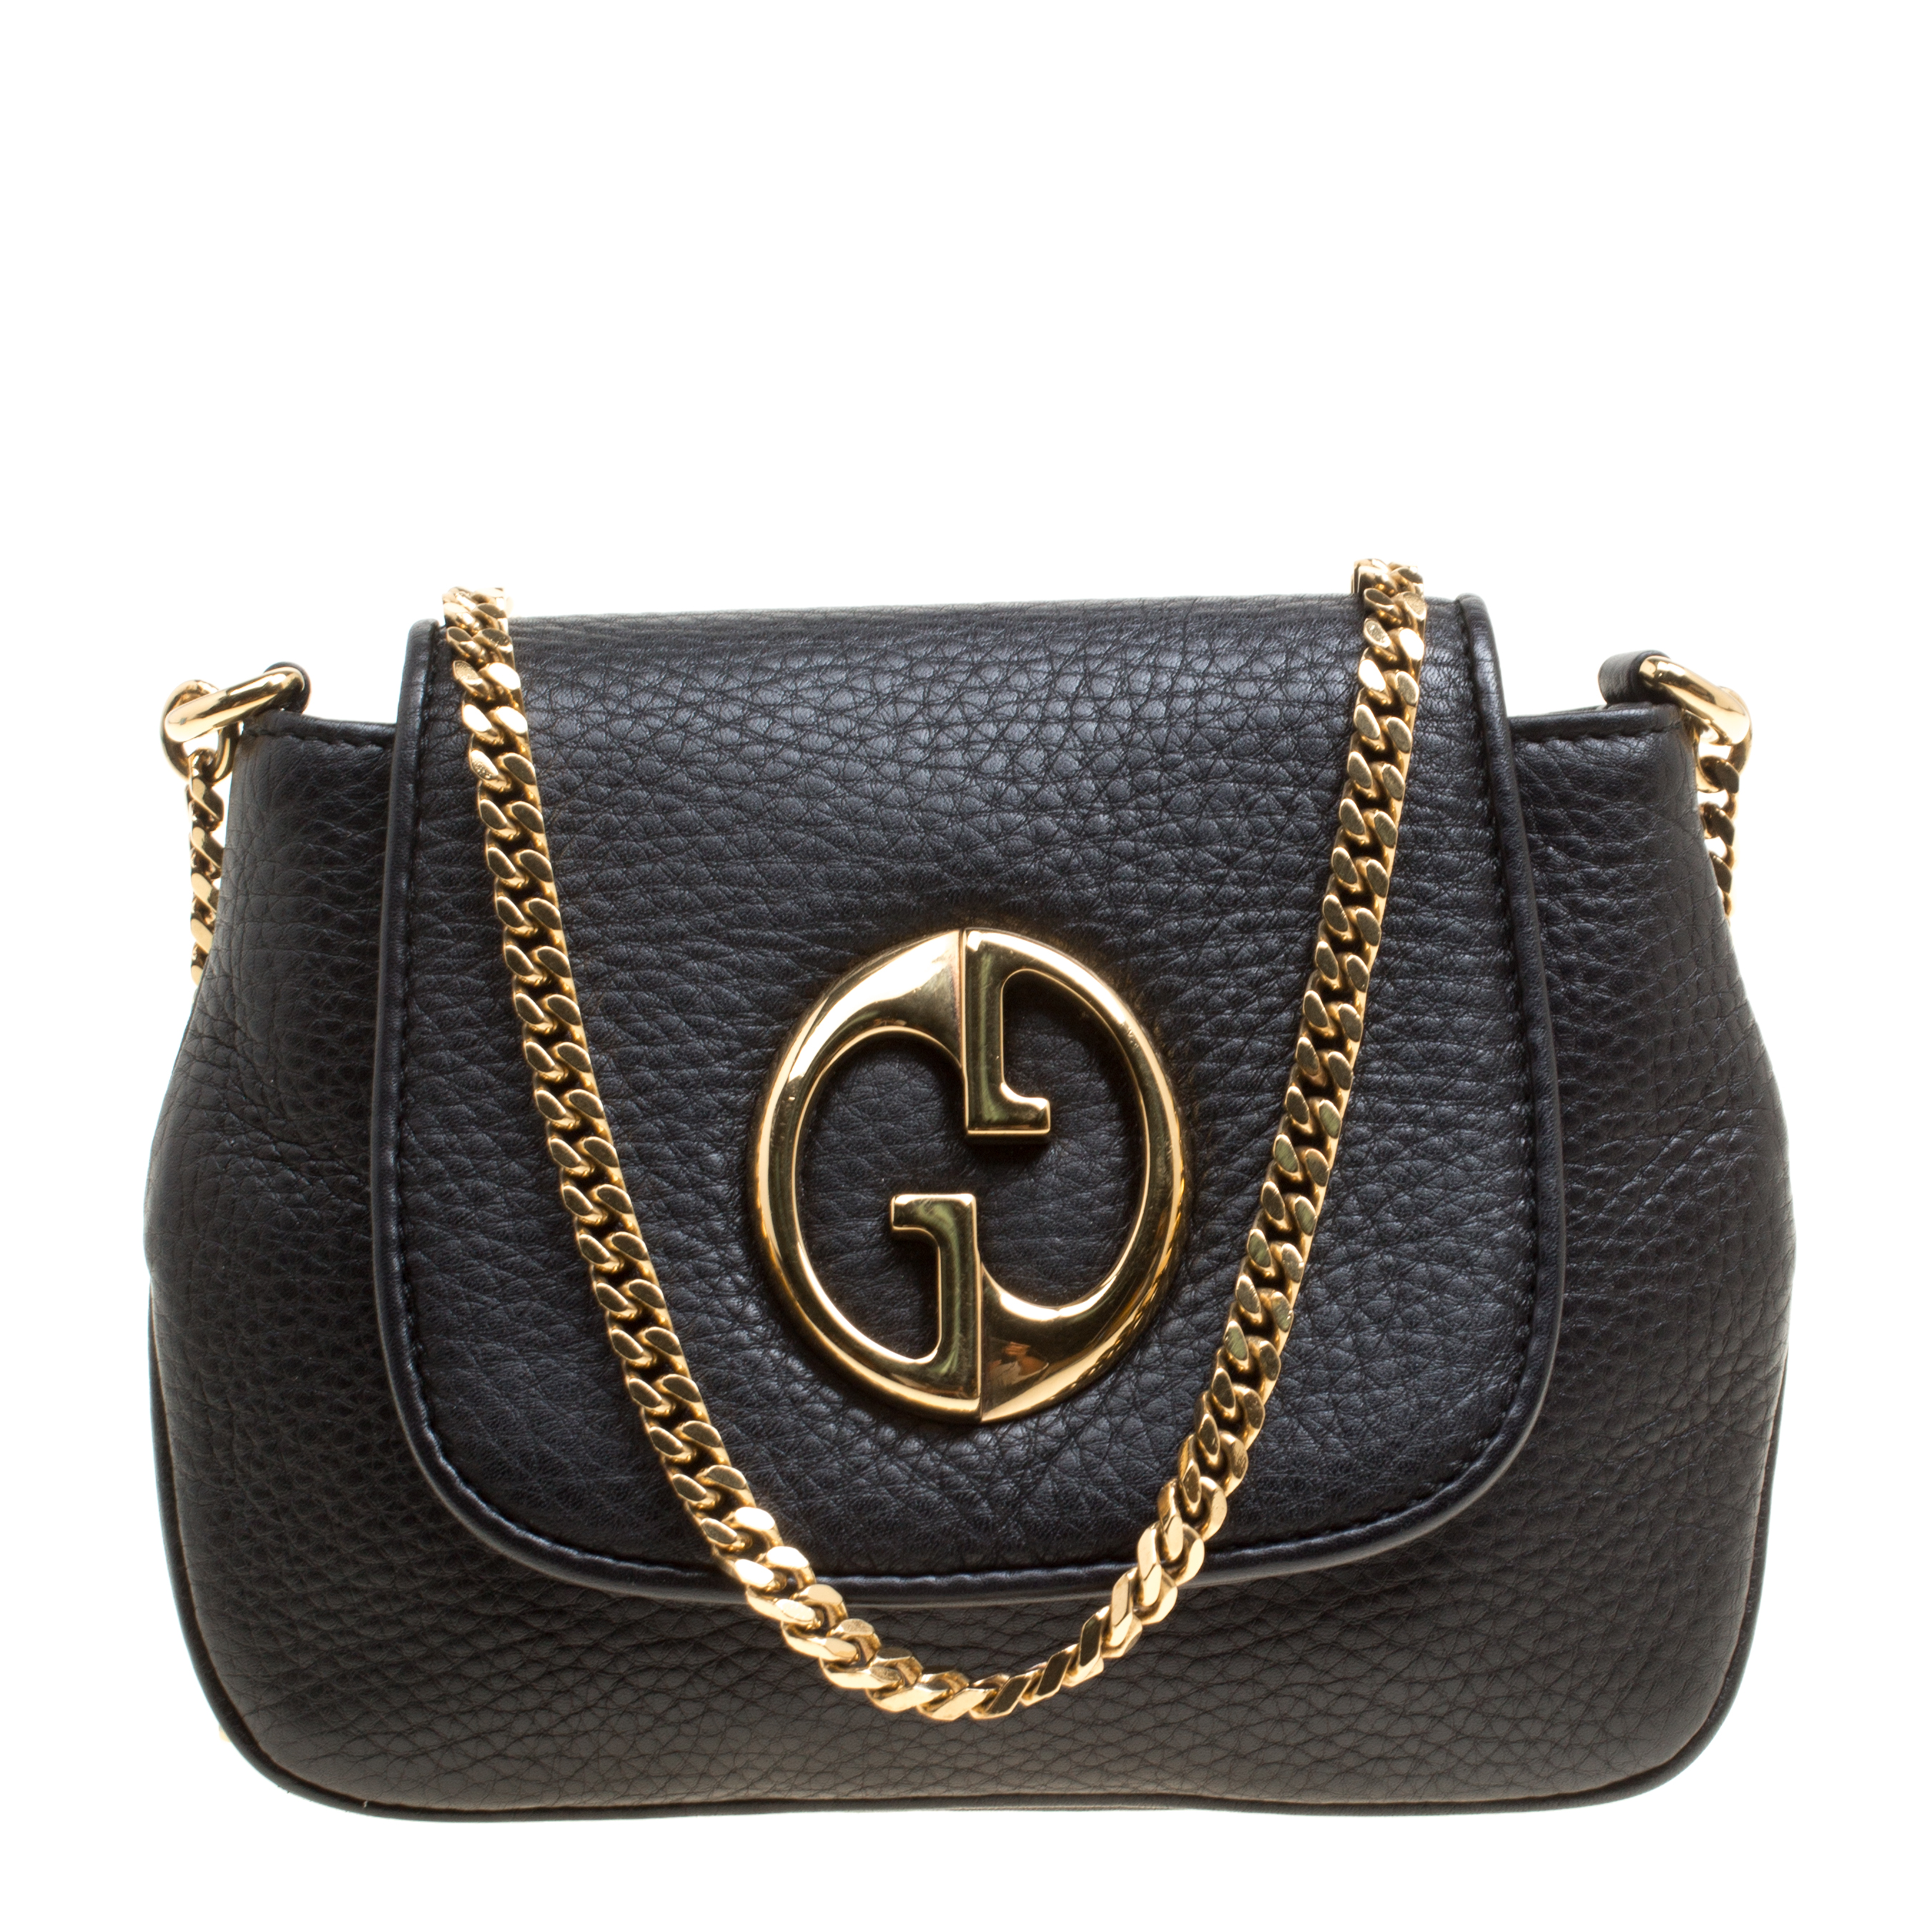 26ecba07863 ... Gucci Black Leather Small 1973 Chain Crossbody Bag. nextprev. prevnext